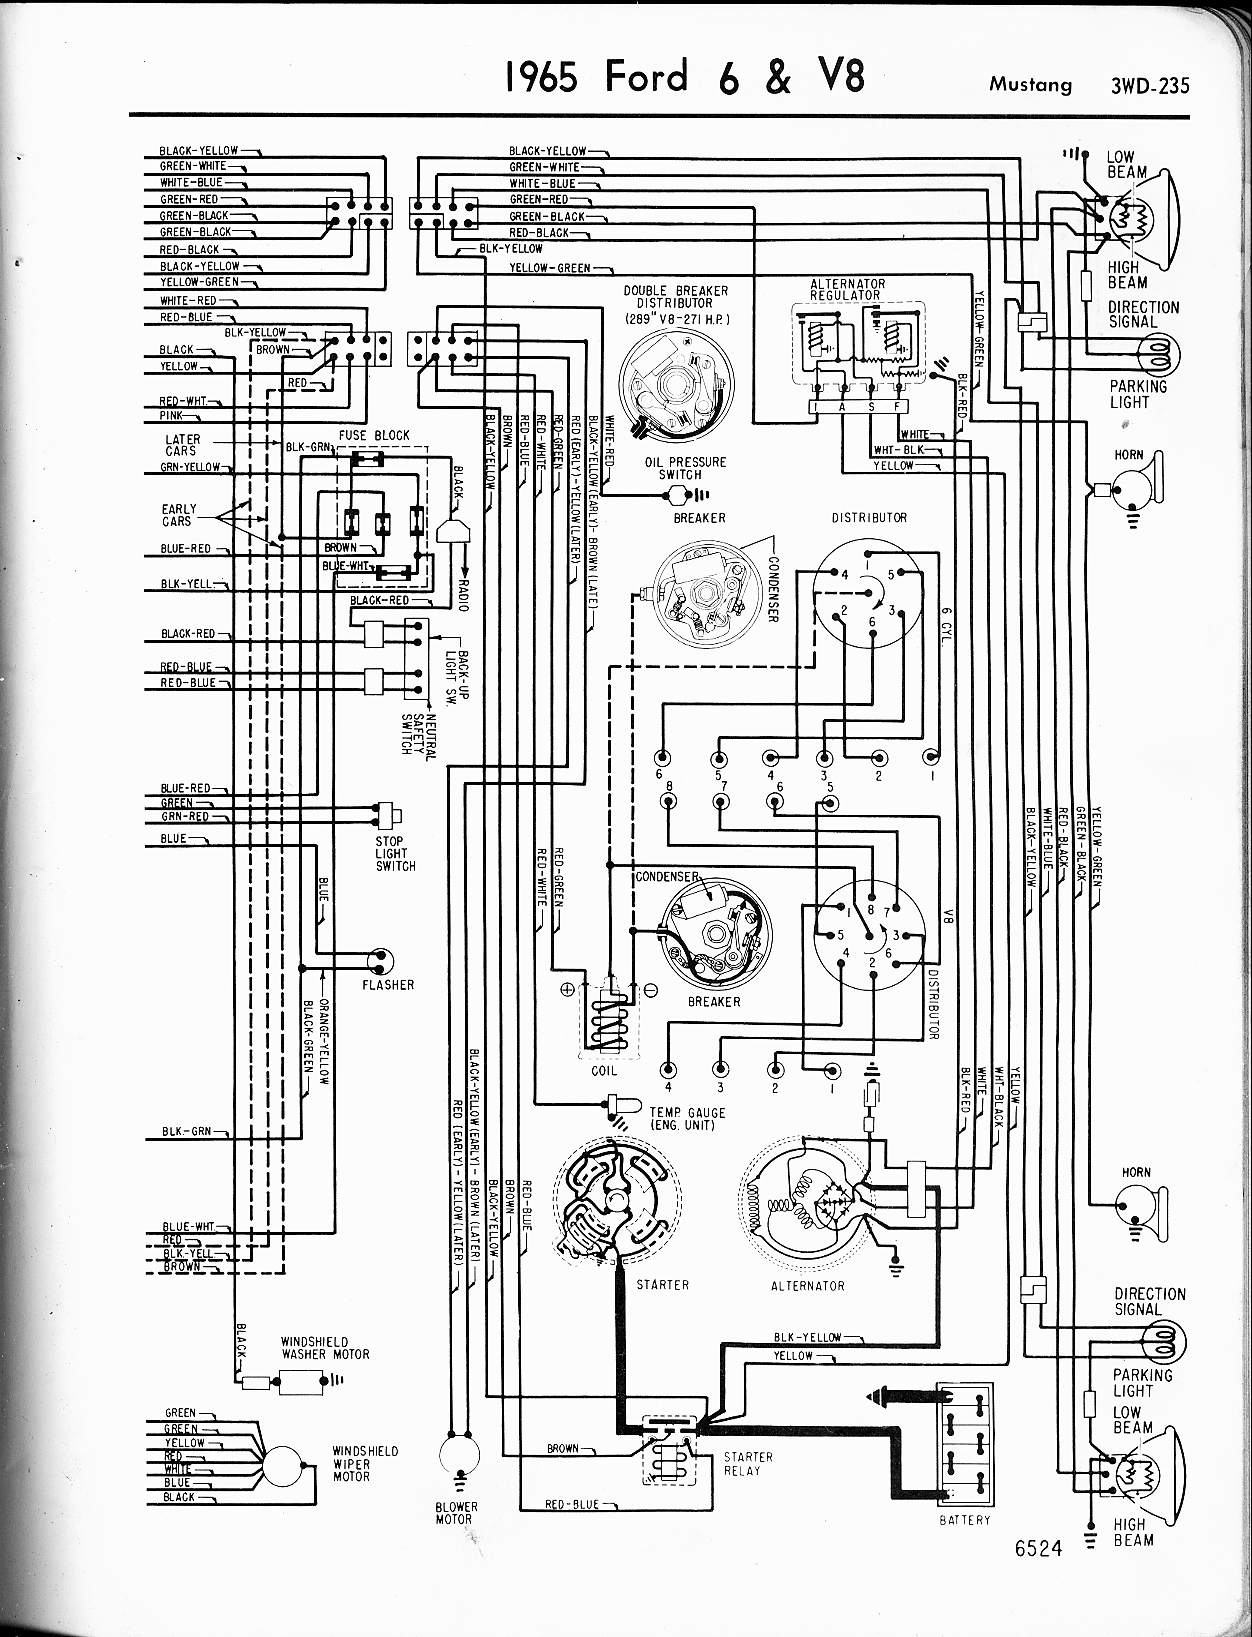 Ford Diagrams 2010 Pick Up Trailer Wiring Diagram 65 Mustang 2 Drawing B